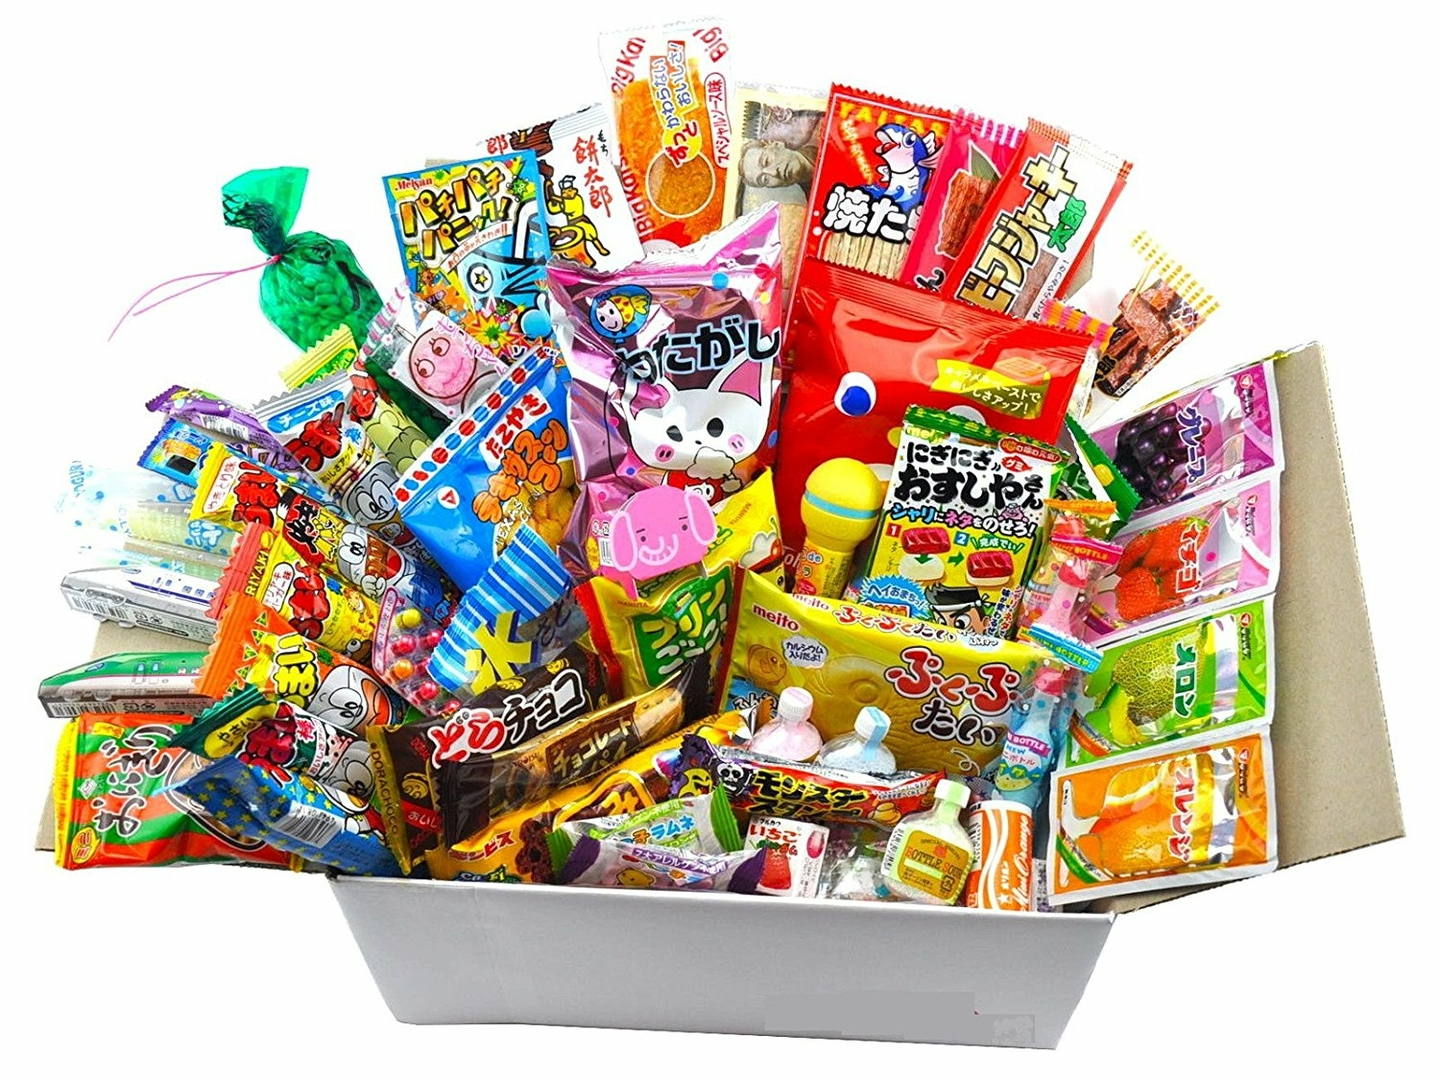 lot de 50pcs x snacks bonbon japonais import japon box pas cher kit melange confiserie. Black Bedroom Furniture Sets. Home Design Ideas